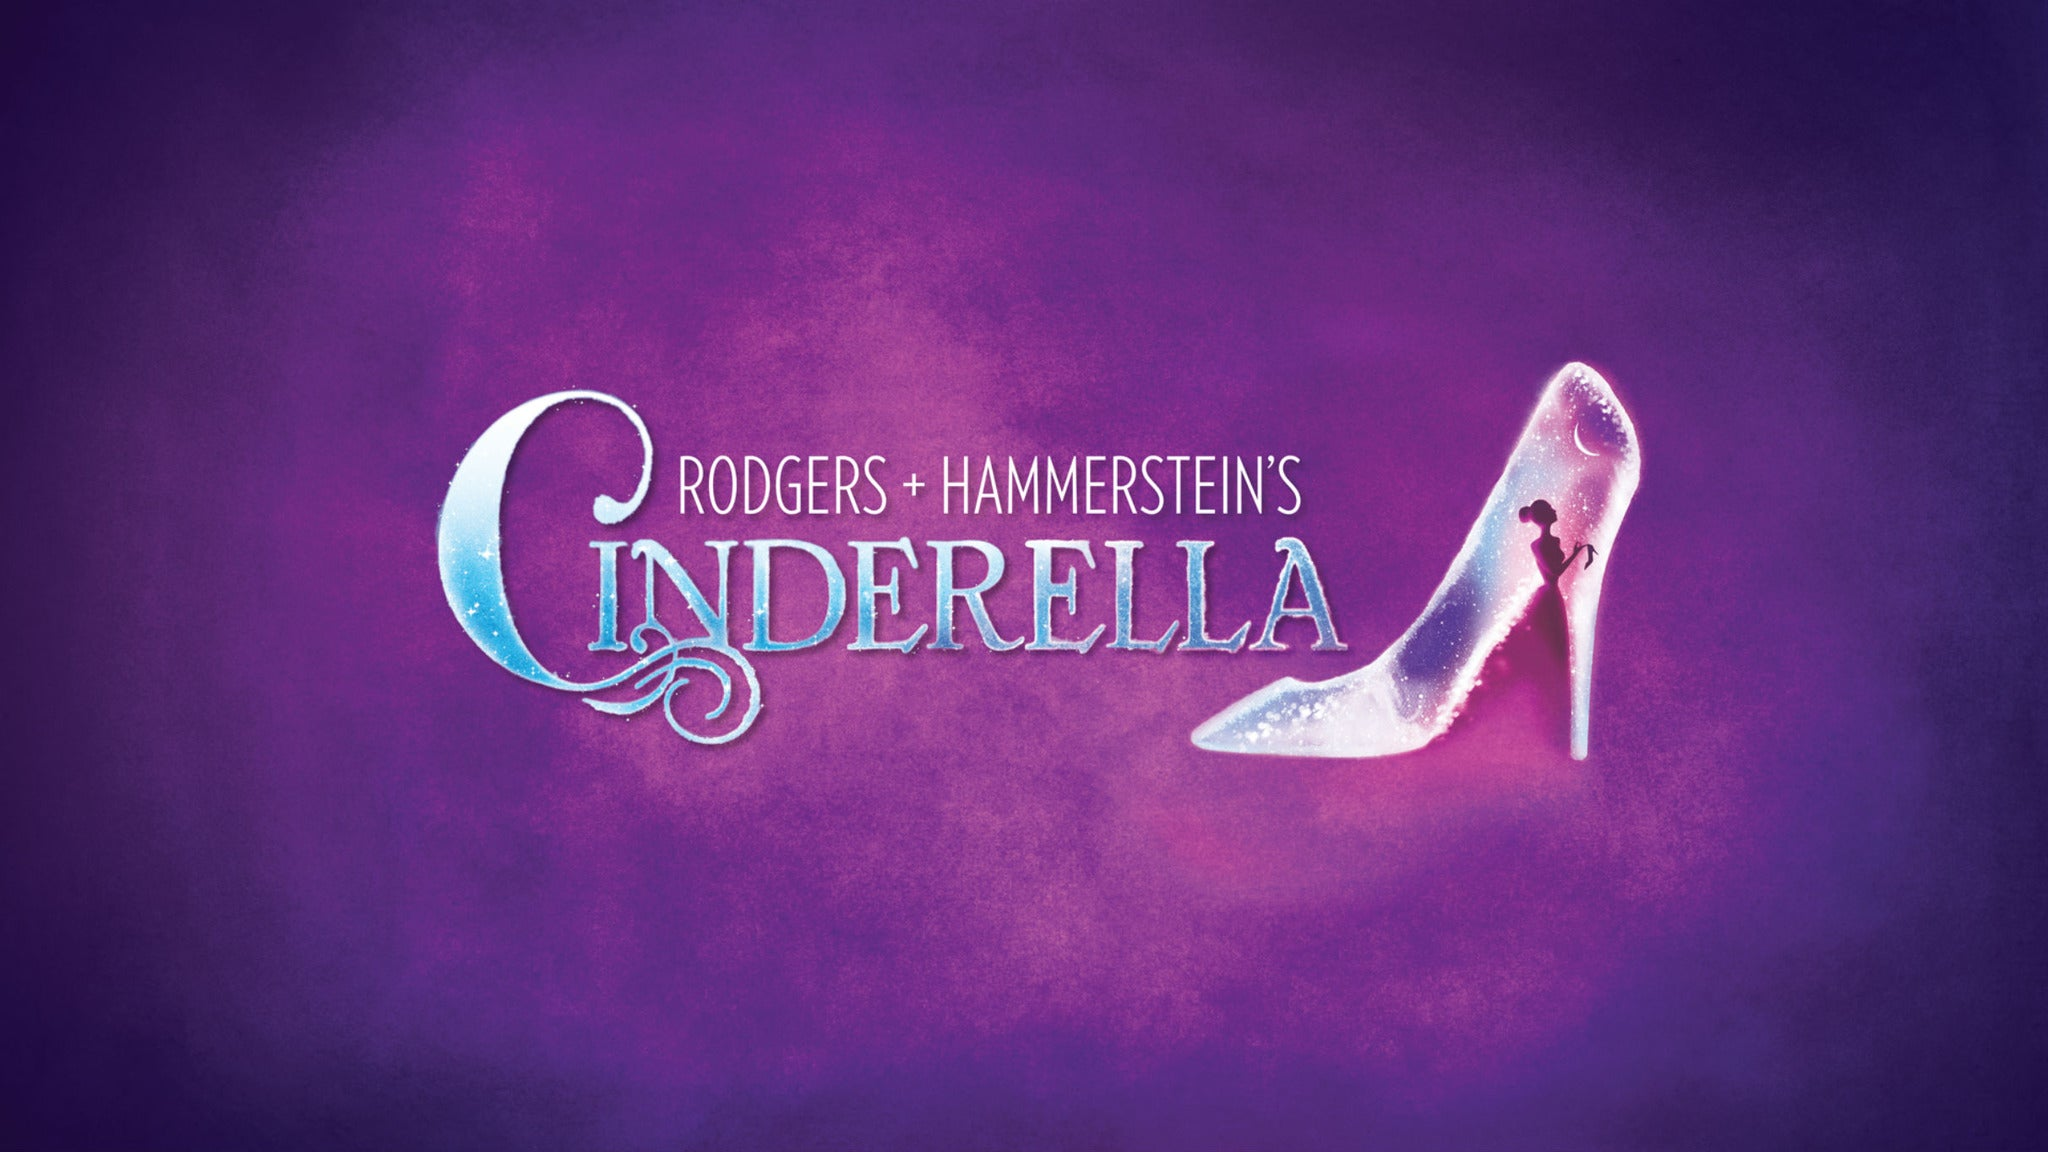 Cinderella-Theater at Three Stages at Folsom Lake College